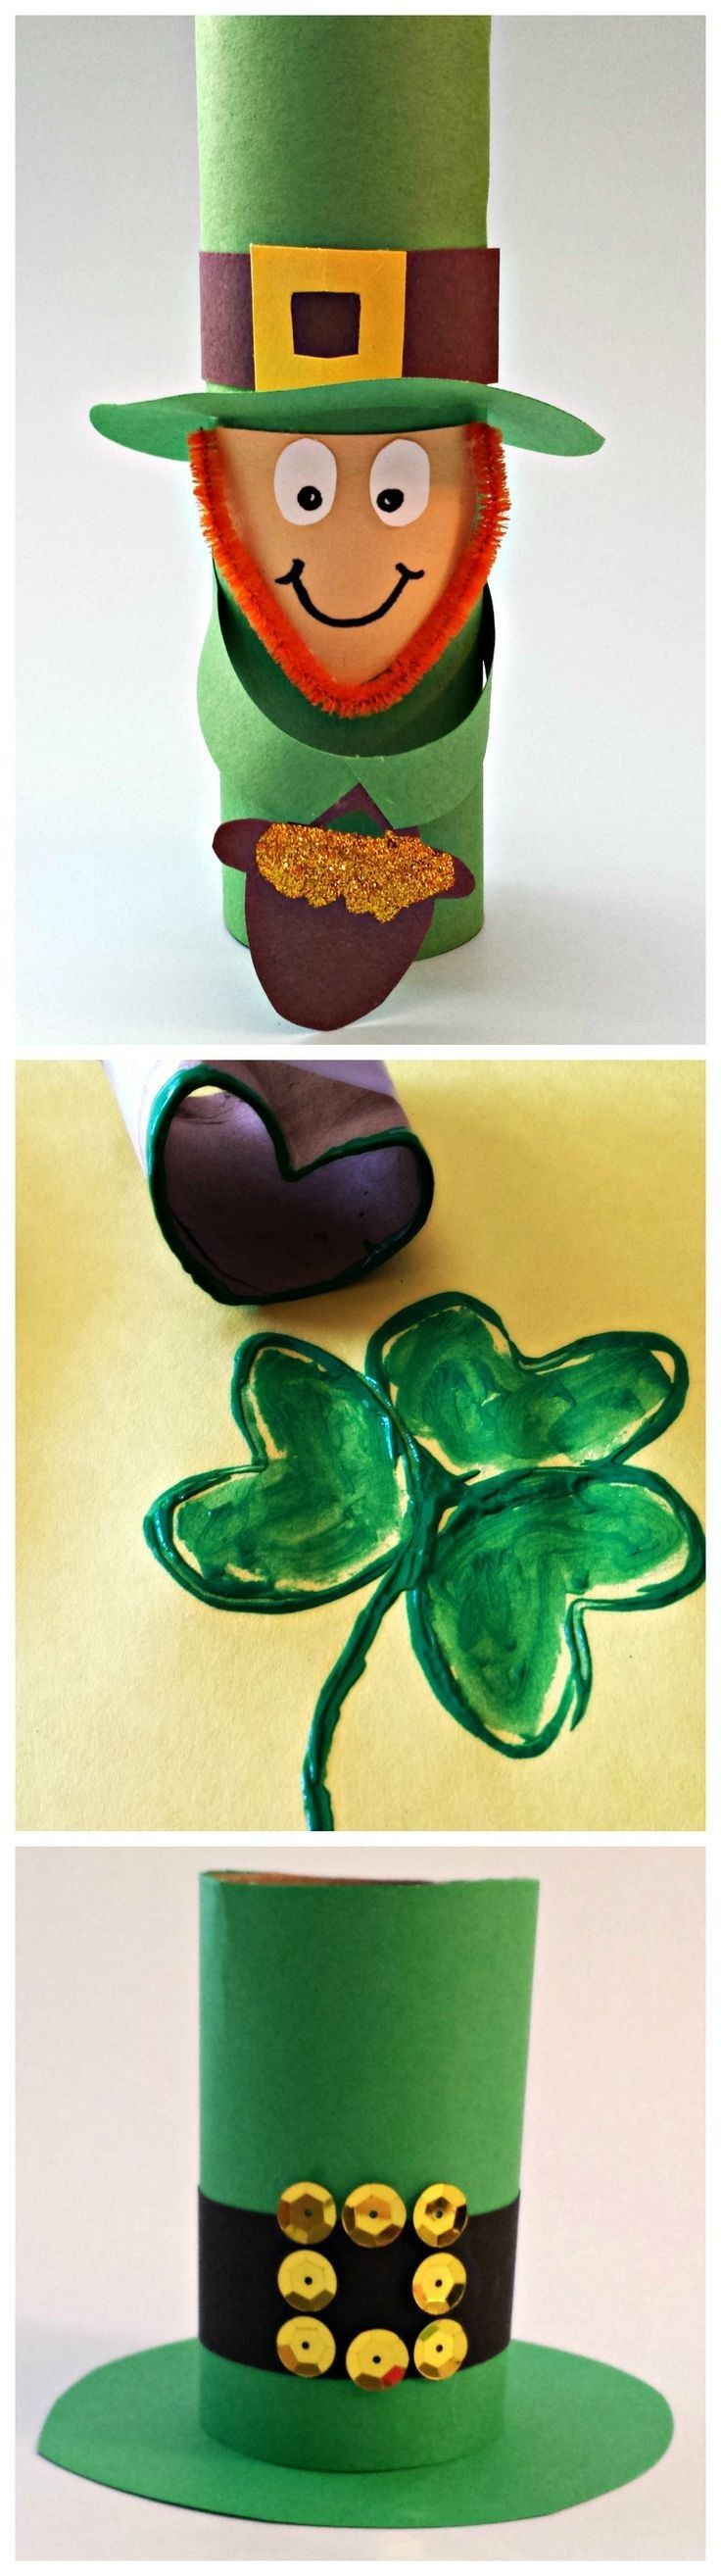 St. Patricks Day Toilet Paper Roll Crafts for Kids, St pattys art projects, DIY St. Patrick's Day Craft, Handmade St. Patrick's Day Door Decor Ideas  #st #patricks #craft #decor #ideas www.loveitsomuch.com